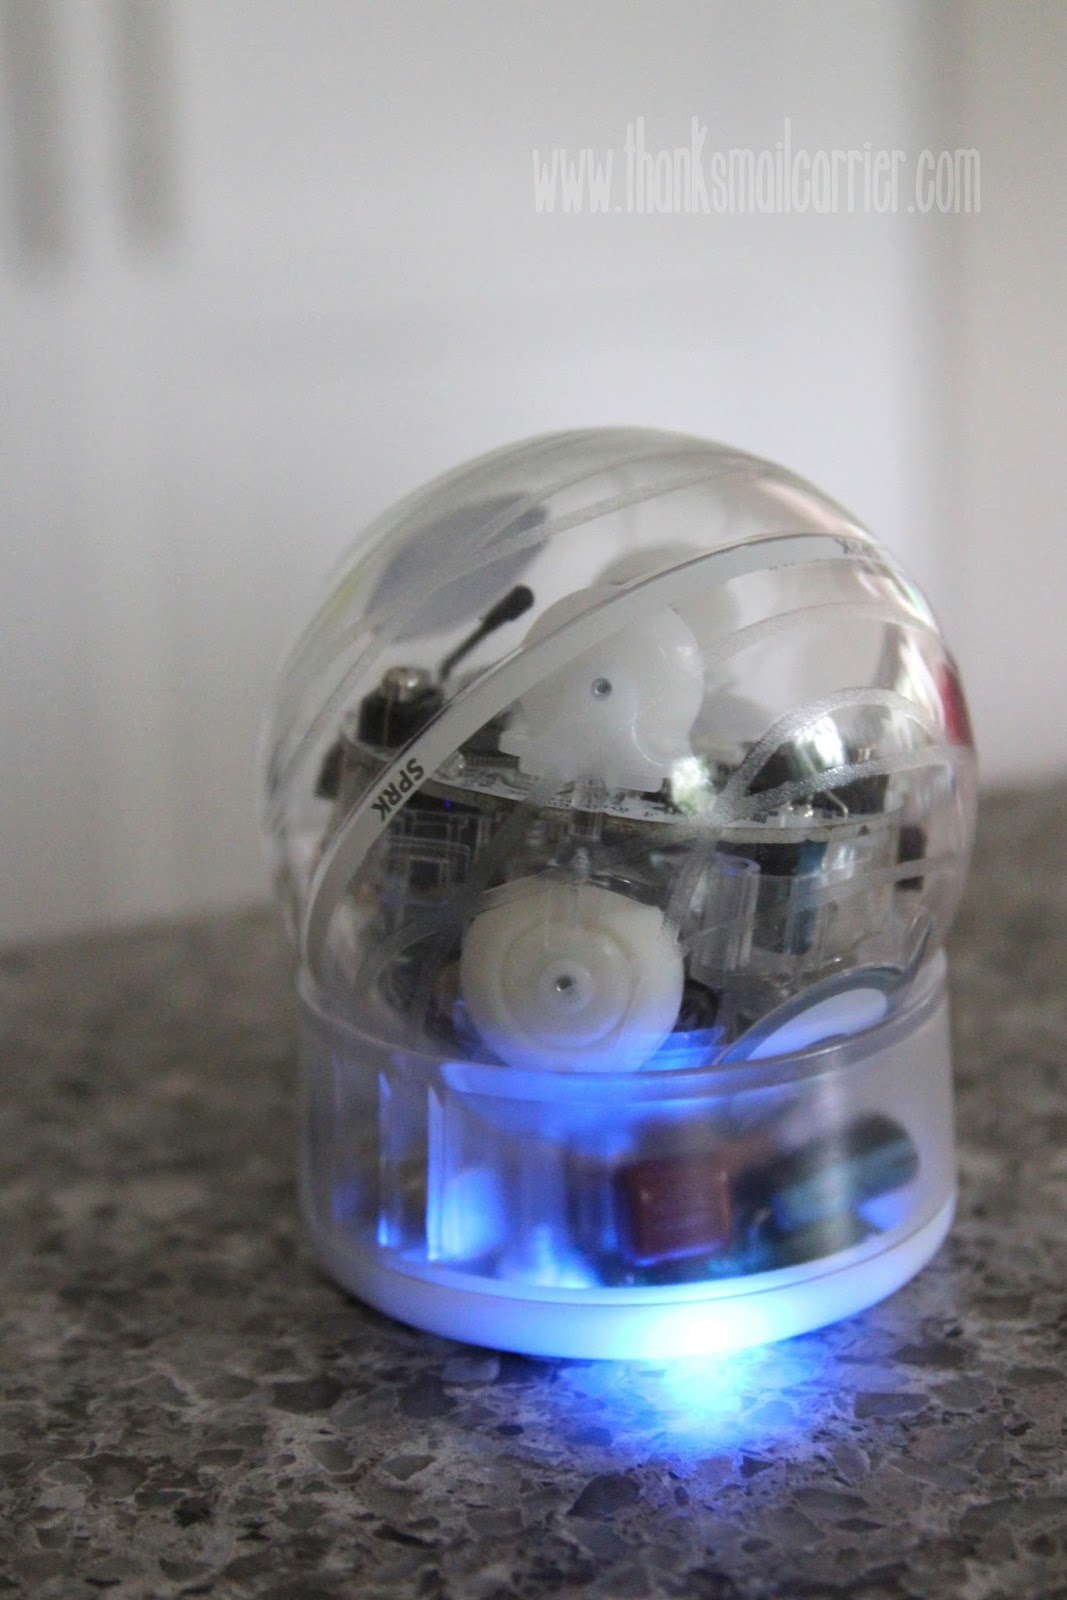 Sphero SPRK Edition charger